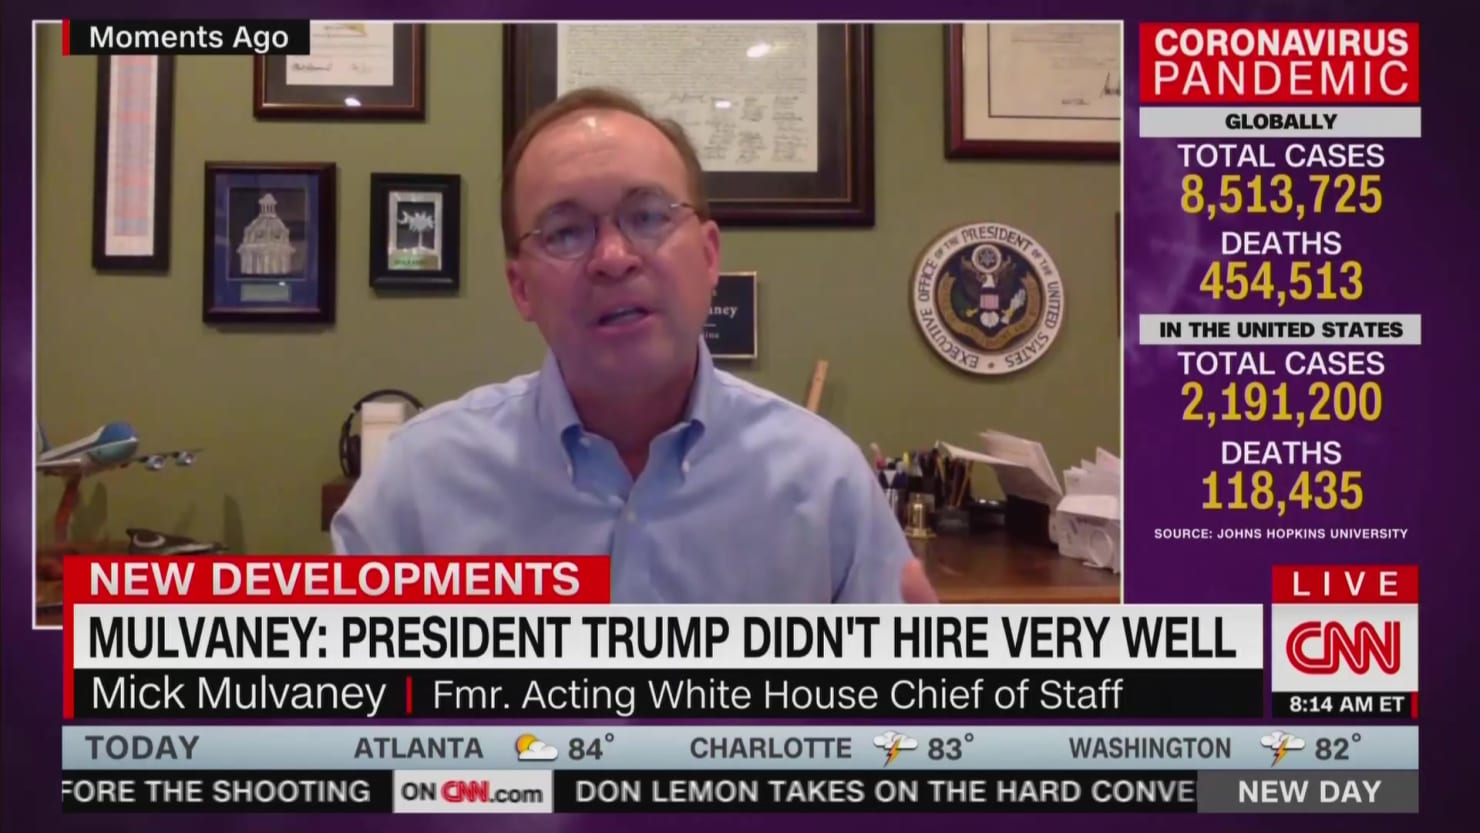 Photo of Mulvaney on Former Aides Criticizing Trump: 'He Didn't Hire Very Well' | The Daily Beast